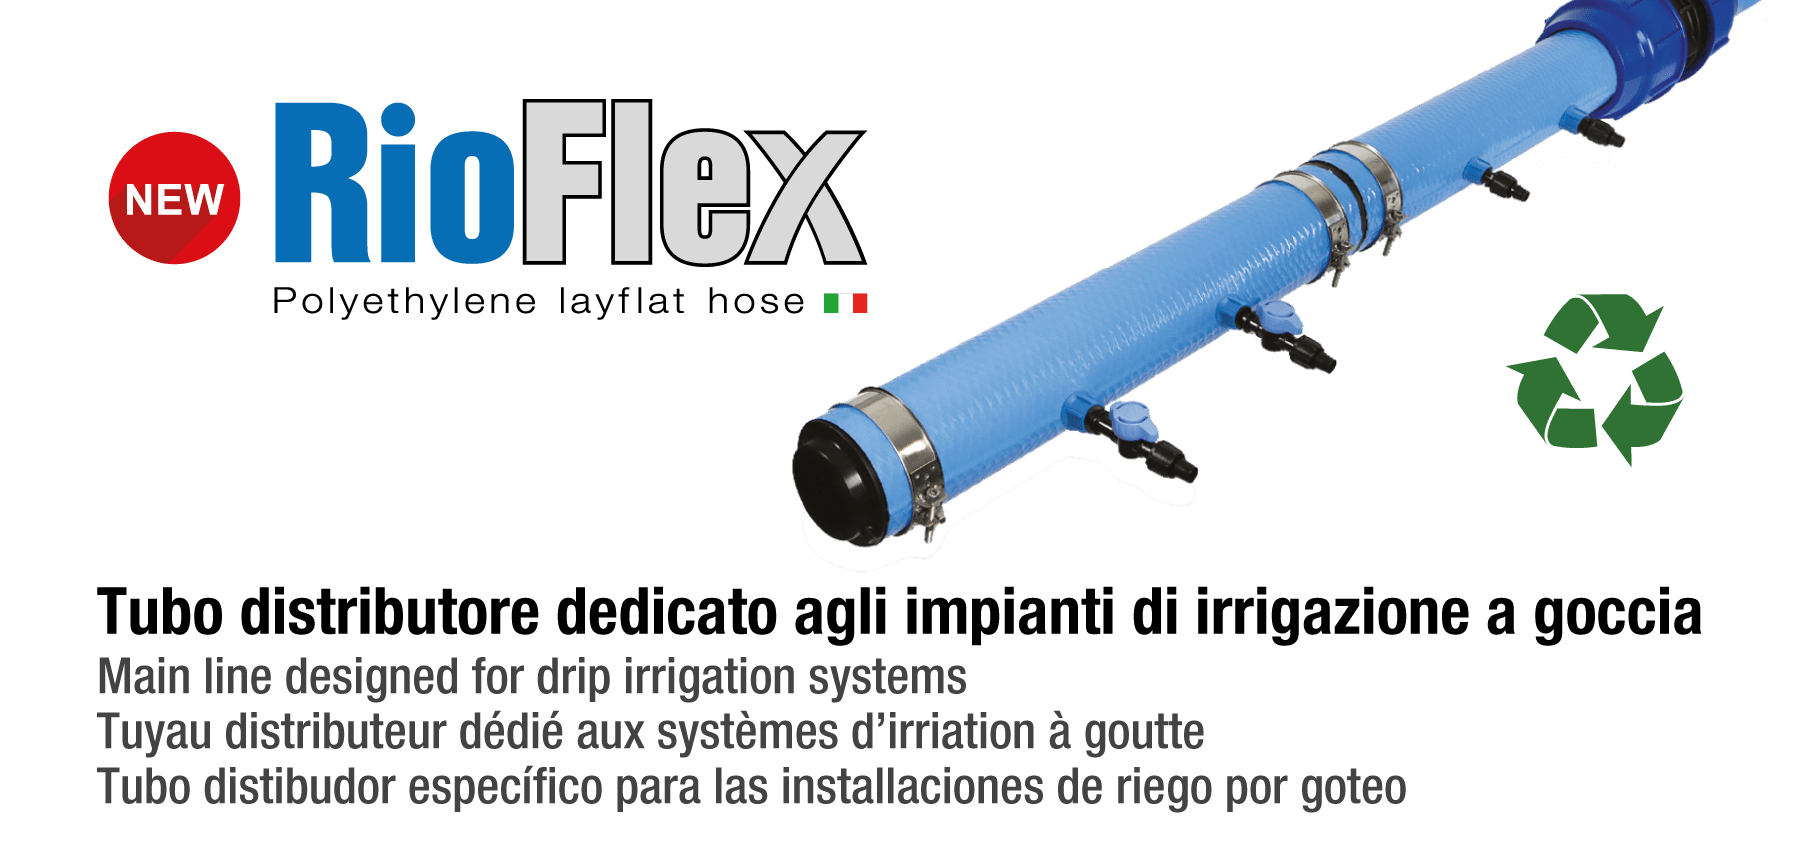 Rioflex - made in Italy